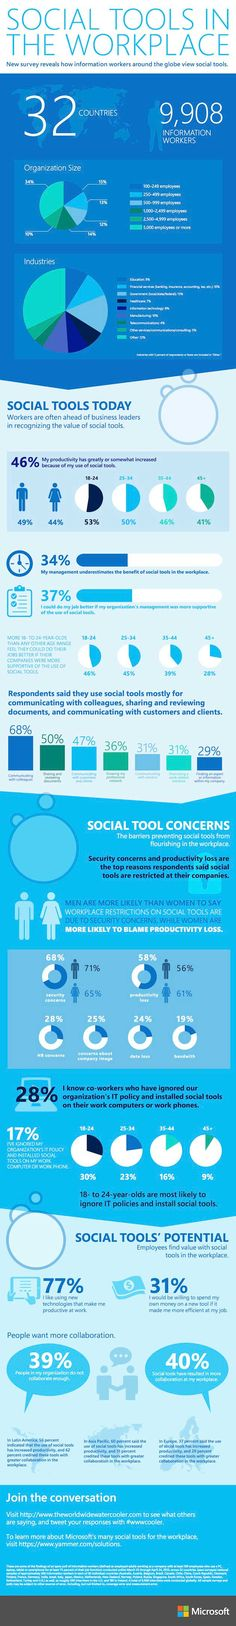 Social Media - How Social Tools Are Used in the Workplace [Infographic]…